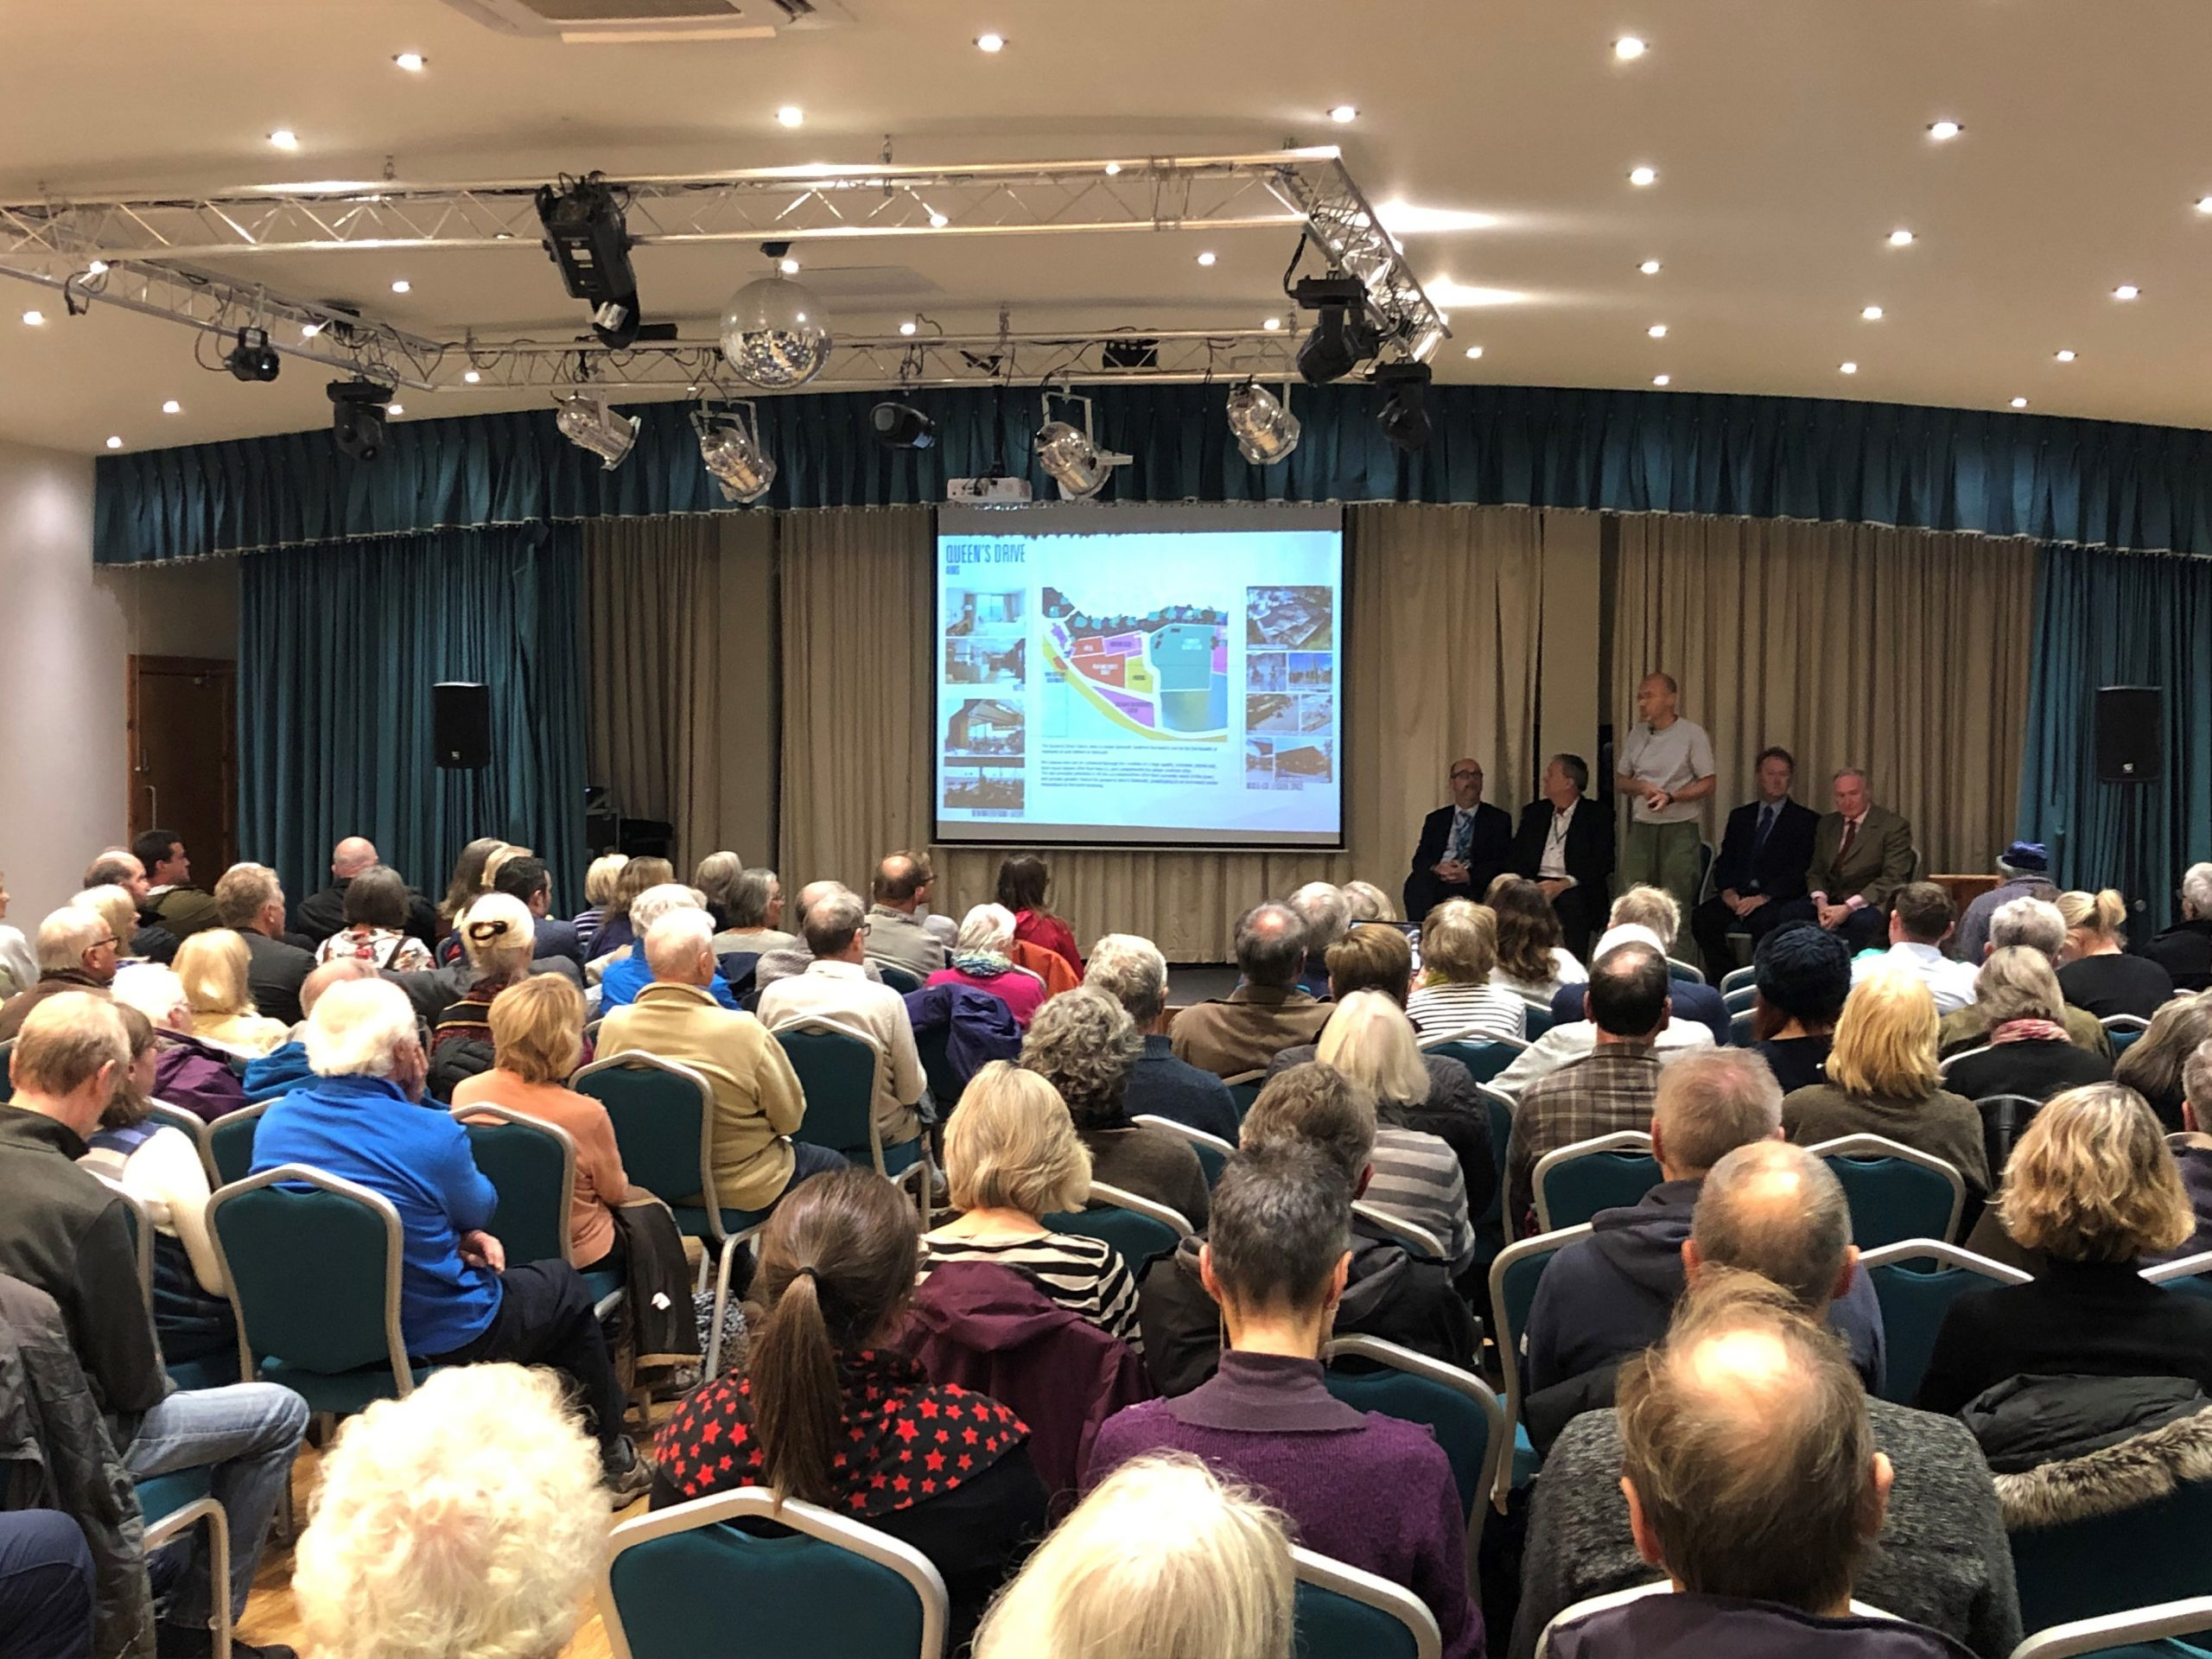 The presentation at the Ocean Suite in Exmouth was packed.